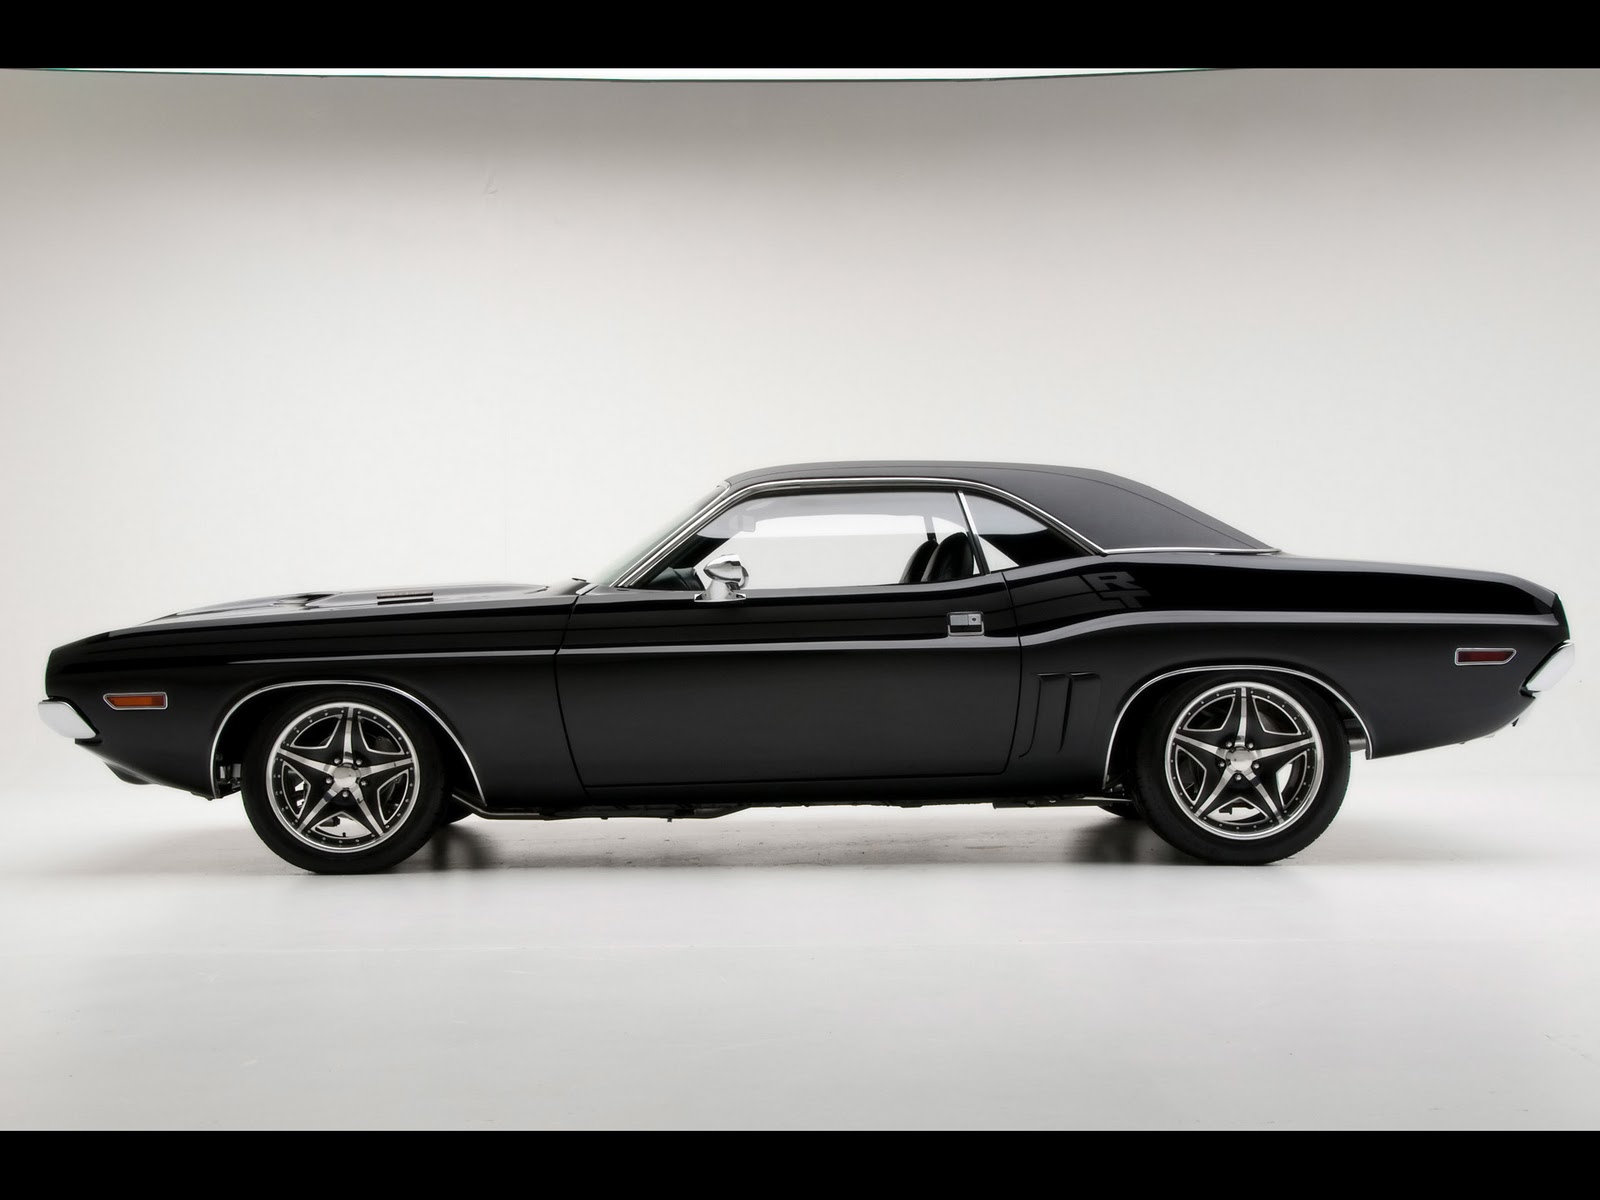 Dodge Challenger 1971 RT Muscle Cars Review and Wallpapers 1600x1200